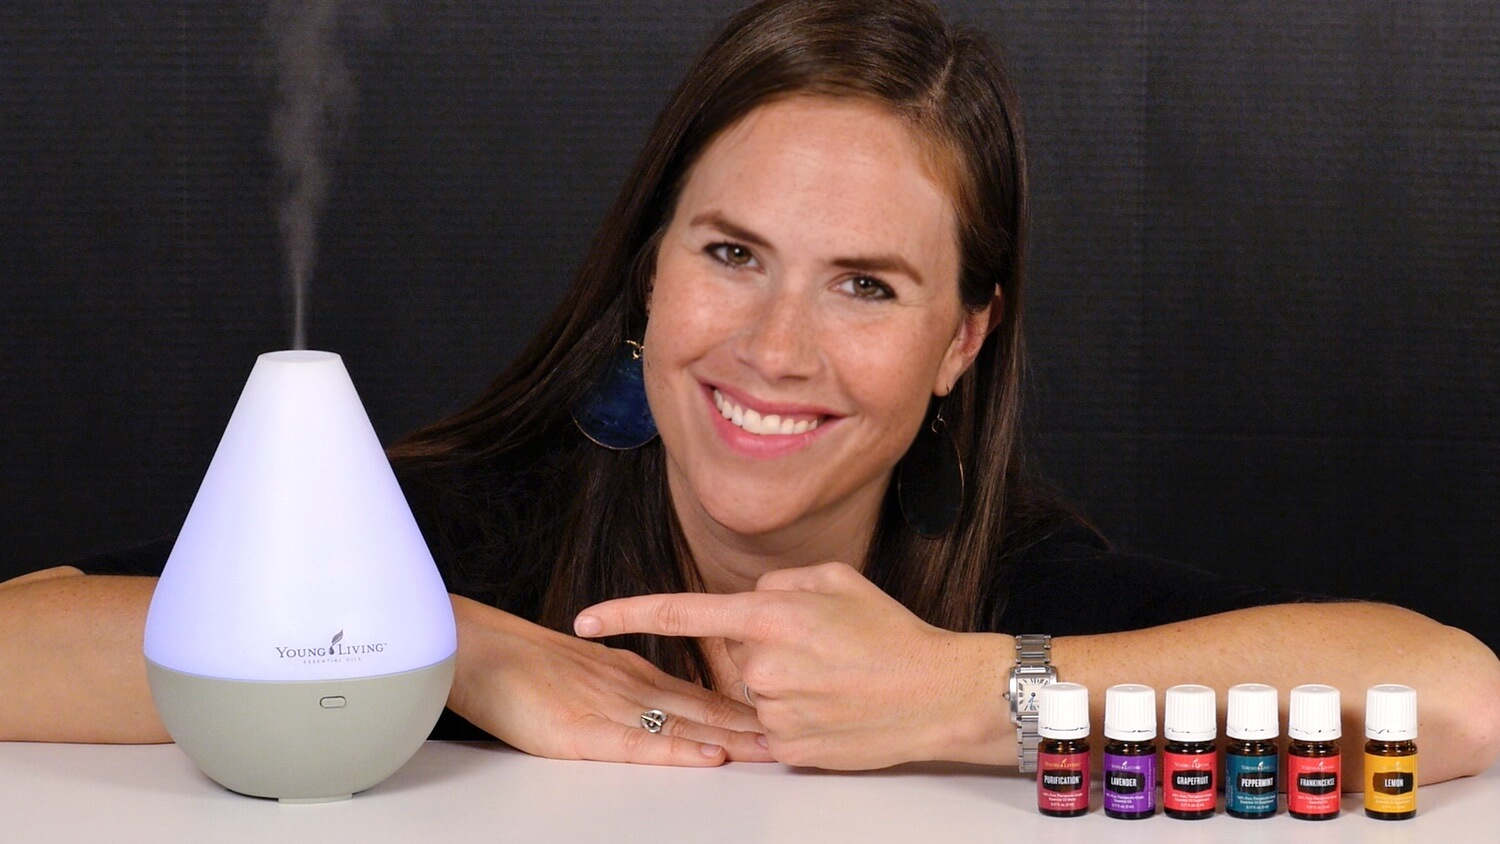 Using an essential oil diffuser is simple and wonderful way to practice aromatherapy. Learn how to diffuse essential oils in this post!